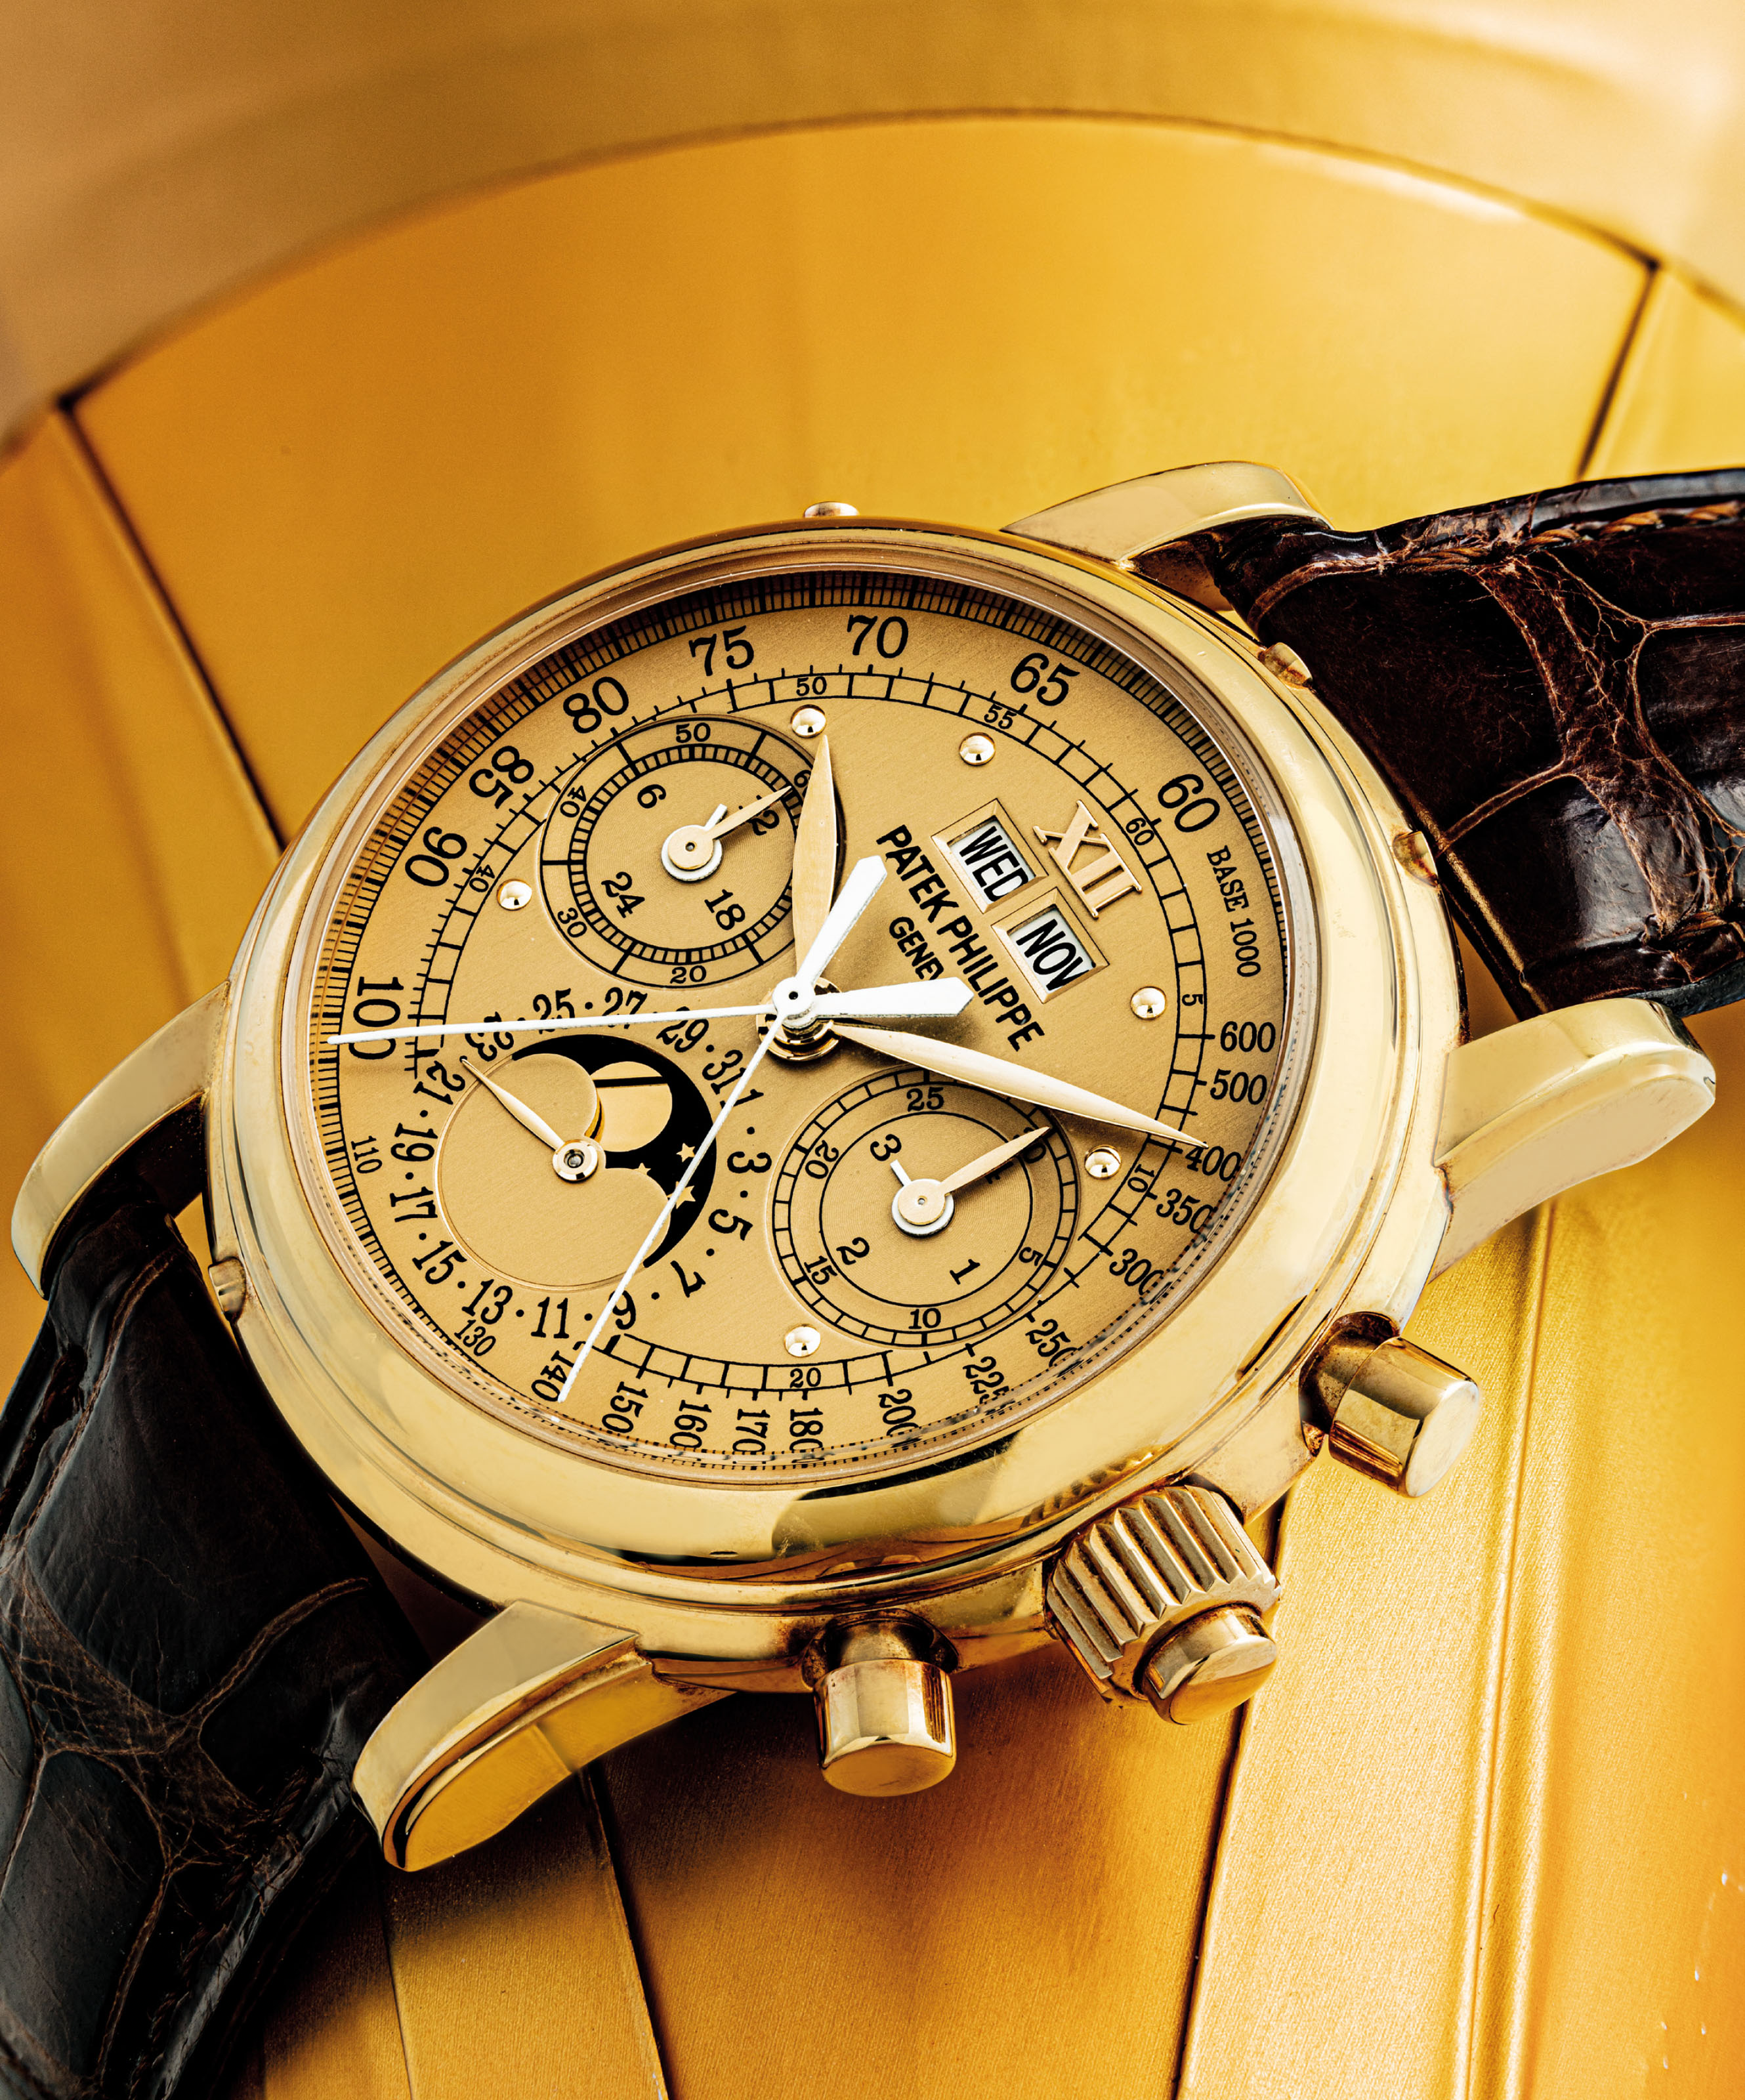 PATEK PHILIPPE. A FINE AND VERY RARE 18K GOLD PERPETUAL CALENDAR SPLIT SECONDS CHRONOGRAPH WRISTWATCH WITH, MOON PHASES, 24 HOUR AND LEAP YEAR INDICATION AND POSSIBLY UNIQUE CHAMPAGNE TACHOMETRE DIAL